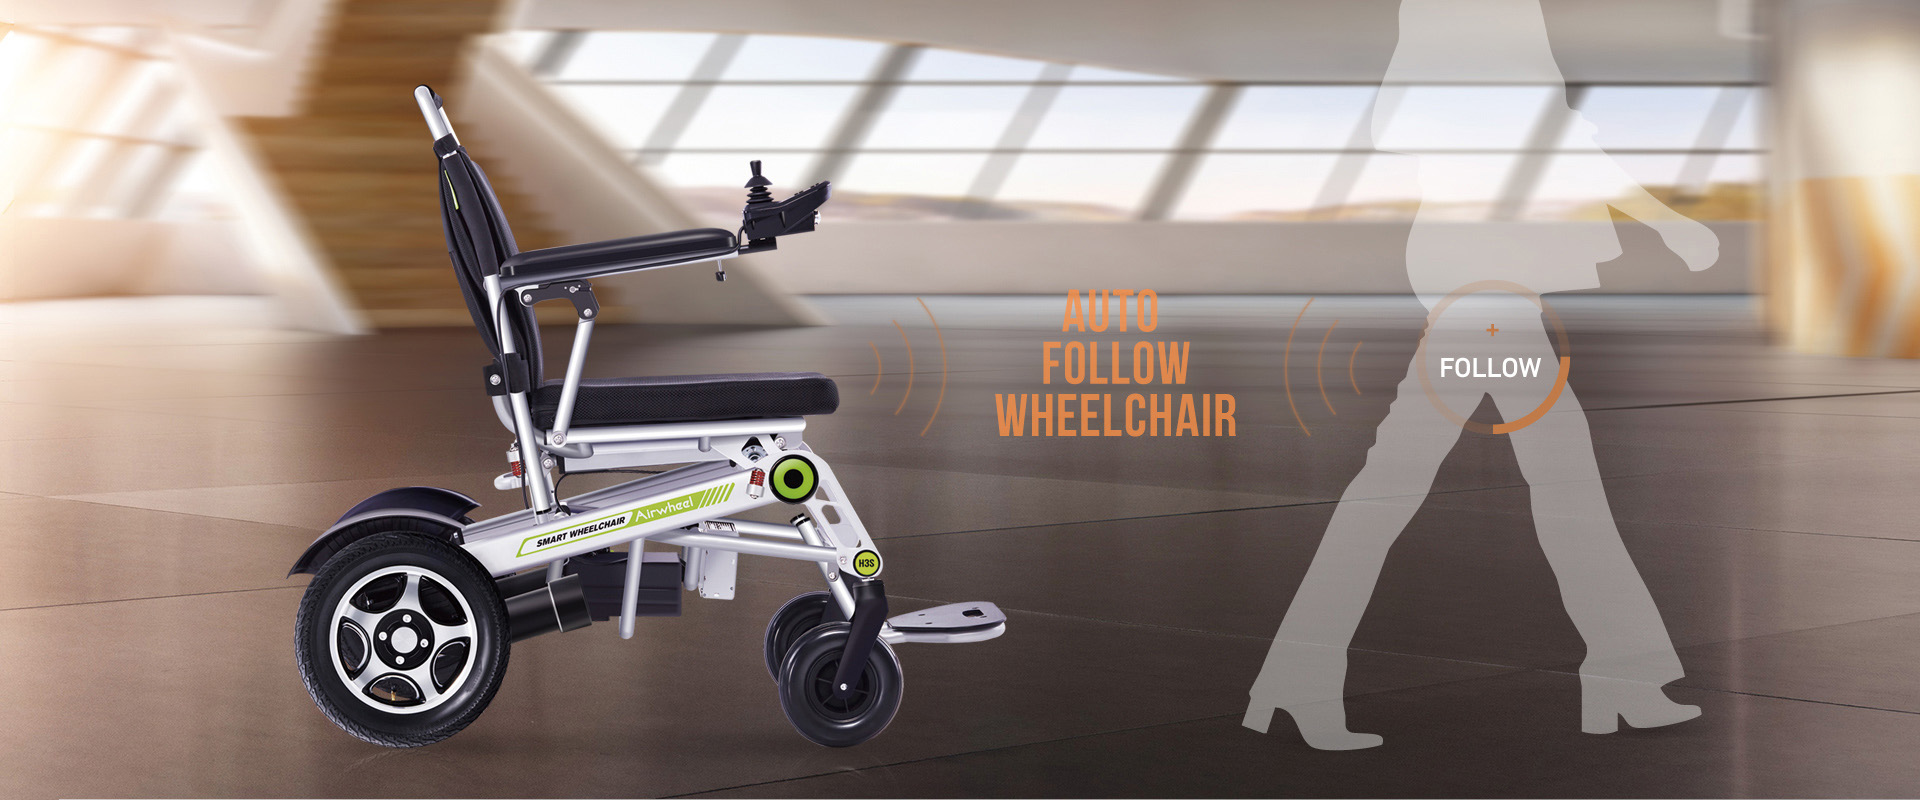 Airwheel H3s Auto Follow wheelchair